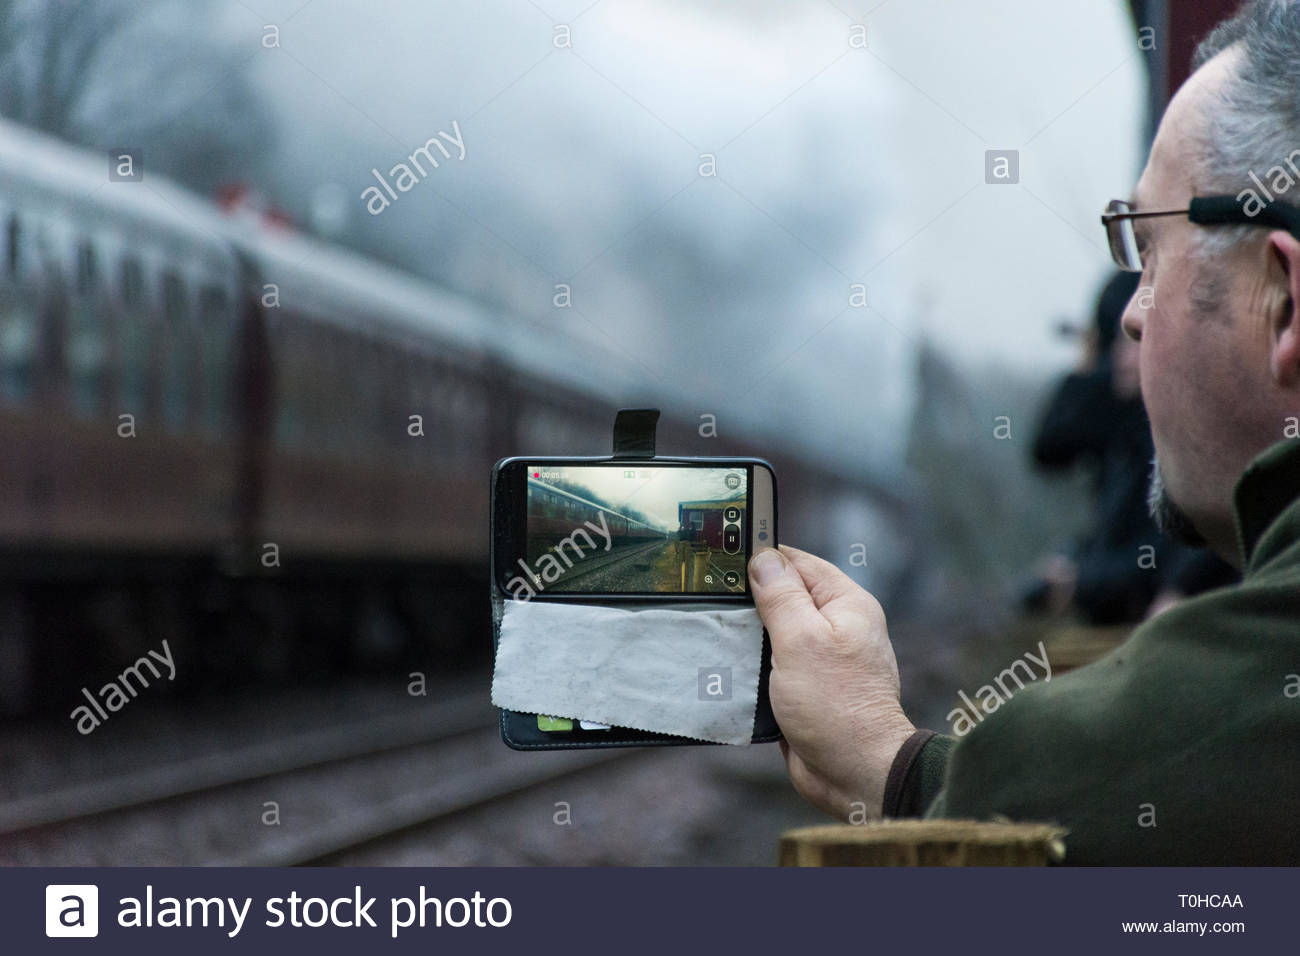 An enthusiast films the Bahamas steam locomotive on a smartphone as it leaves Appleby station on its journey south over the Settle to Carlisle line. - Stock Image